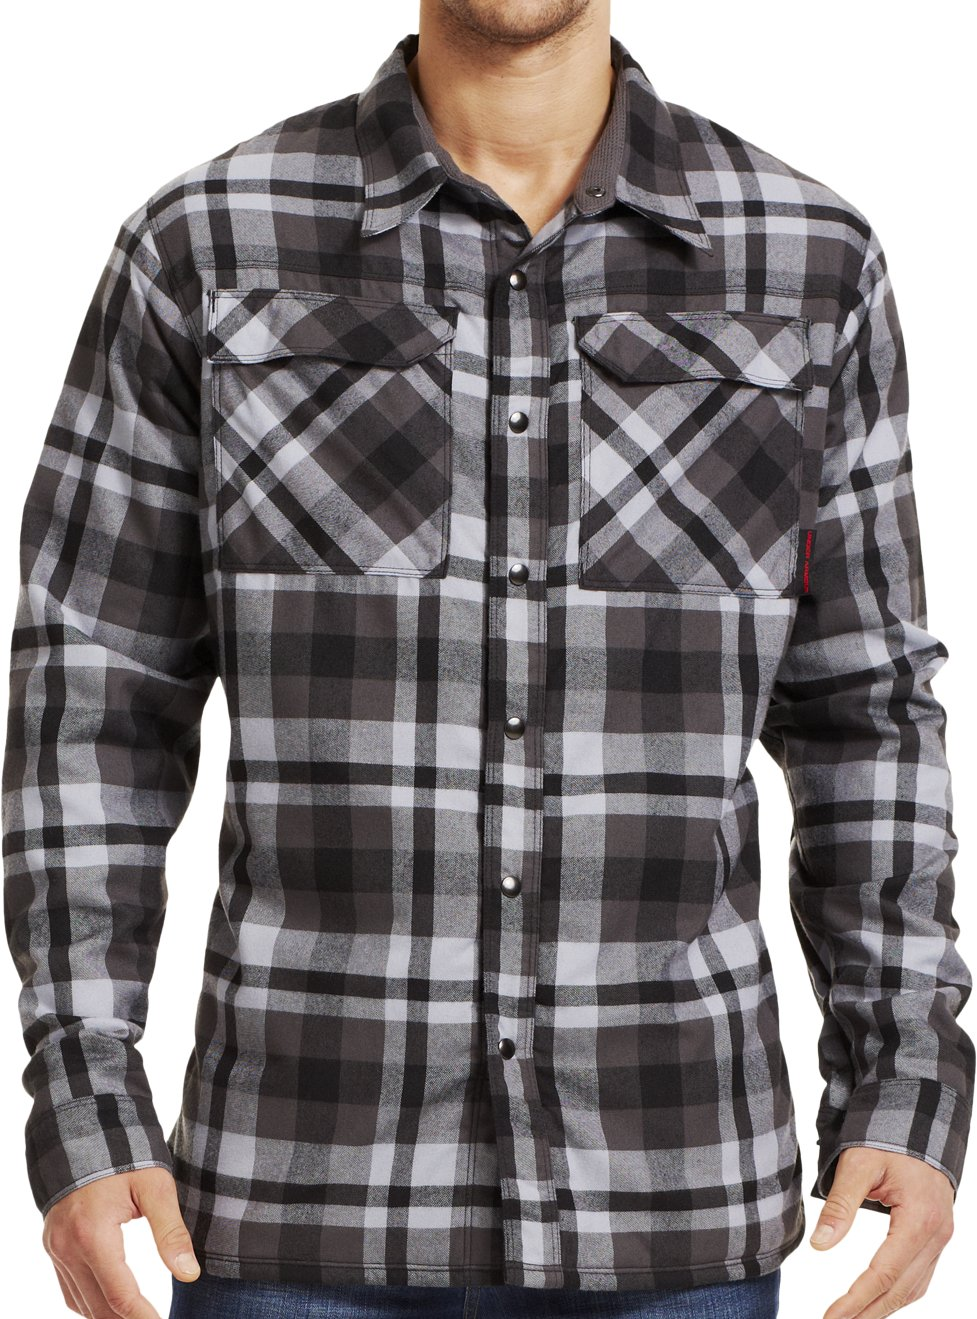 Men's UA Lined Shirt-Jacket | Under Armour US